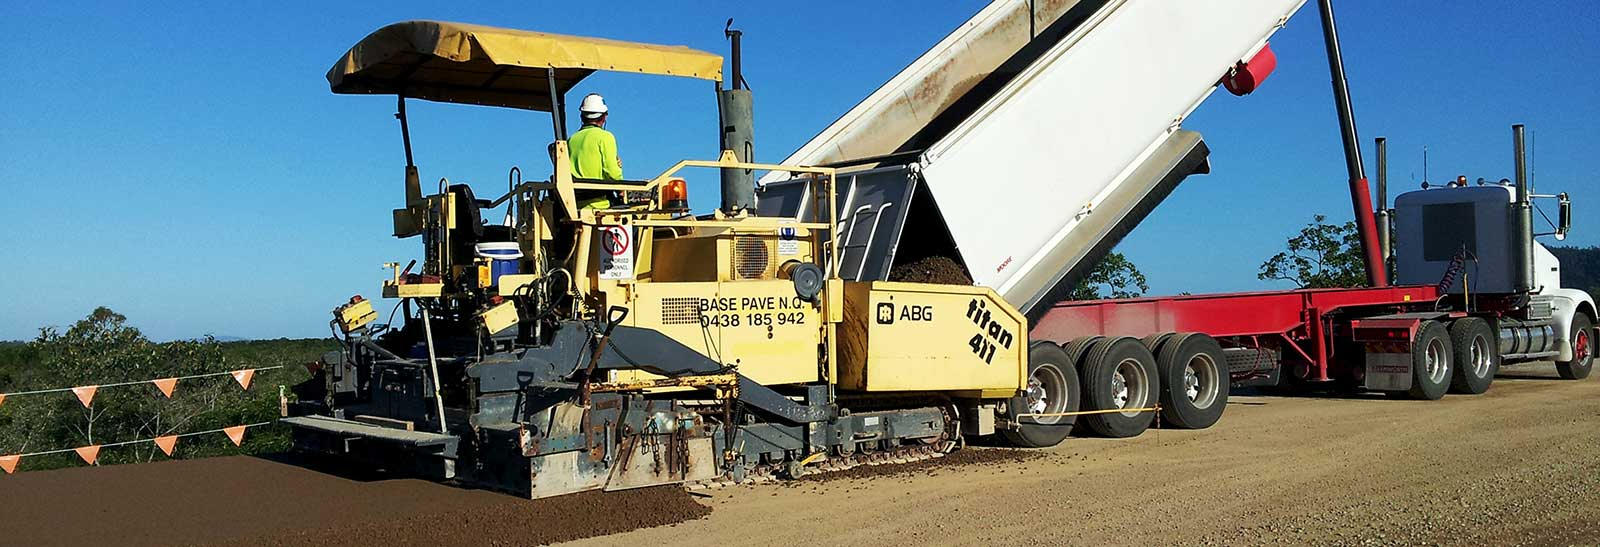 Base-Pave-NQ-Road-Base-Paving-Cold-Recycling-servjces-banner